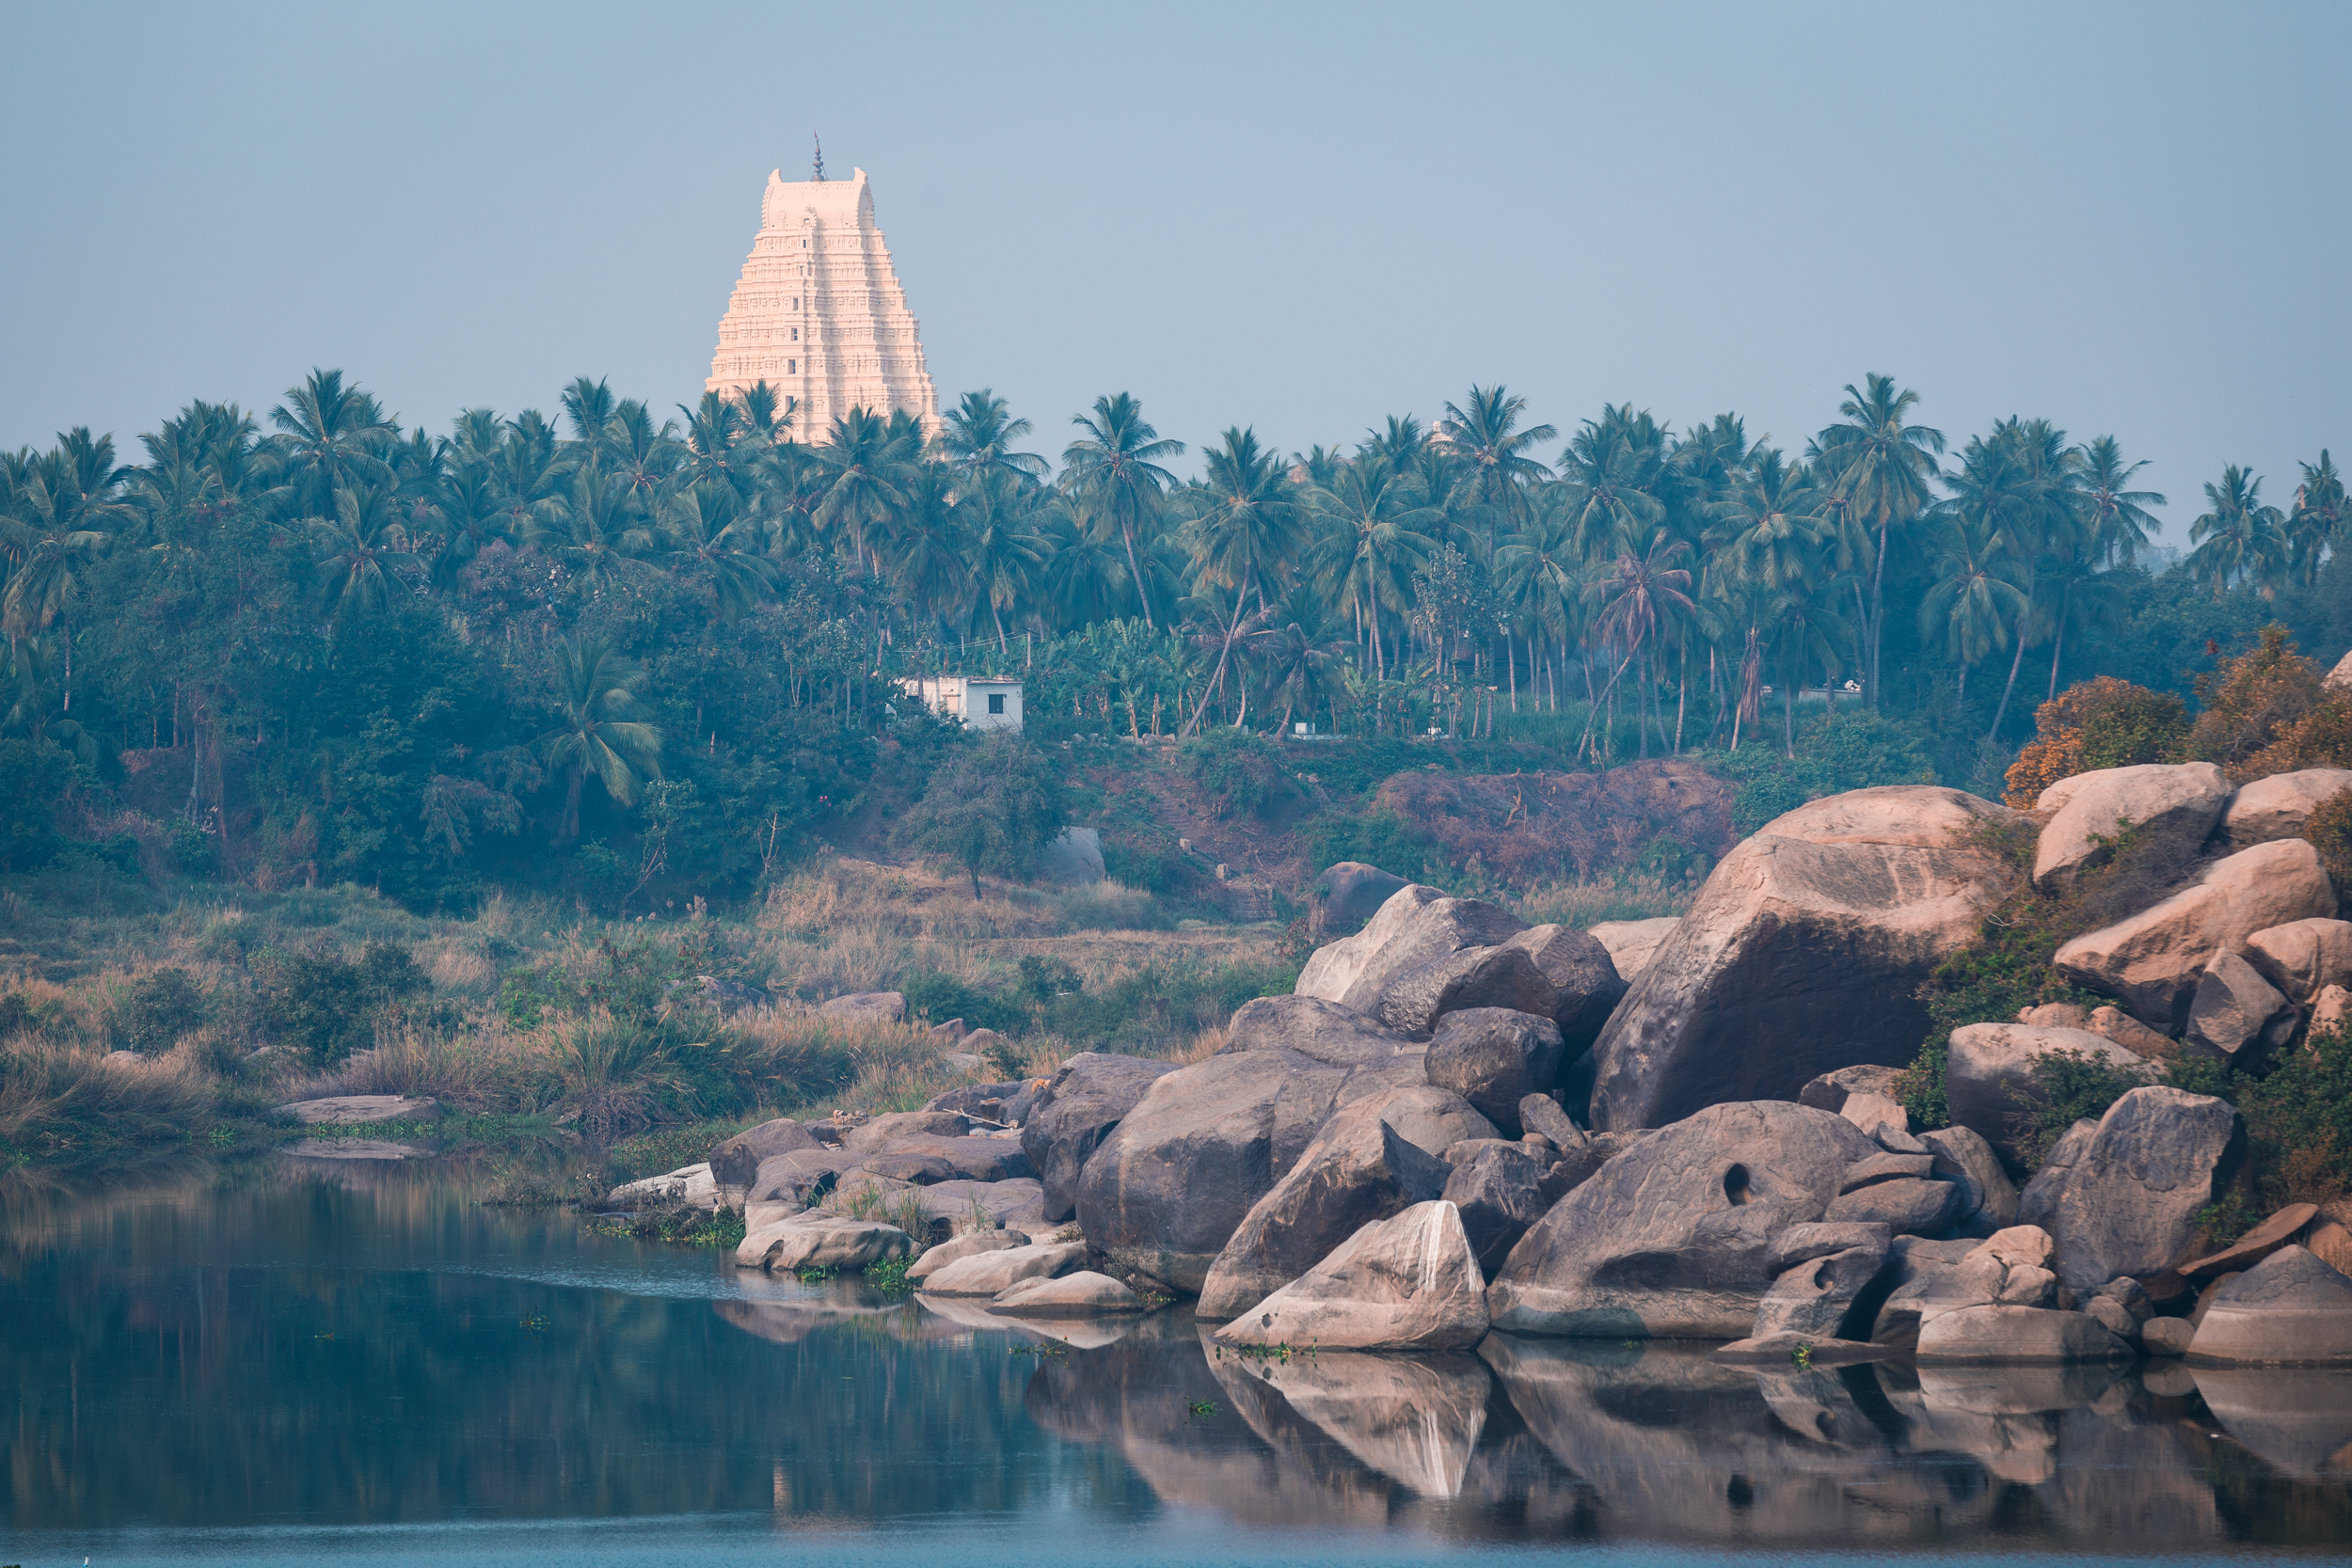 Across the Tungabhadra River lies the Virupaksha Temple dedicated to Lord Shiva, standing tall over the ruins of Hampi.